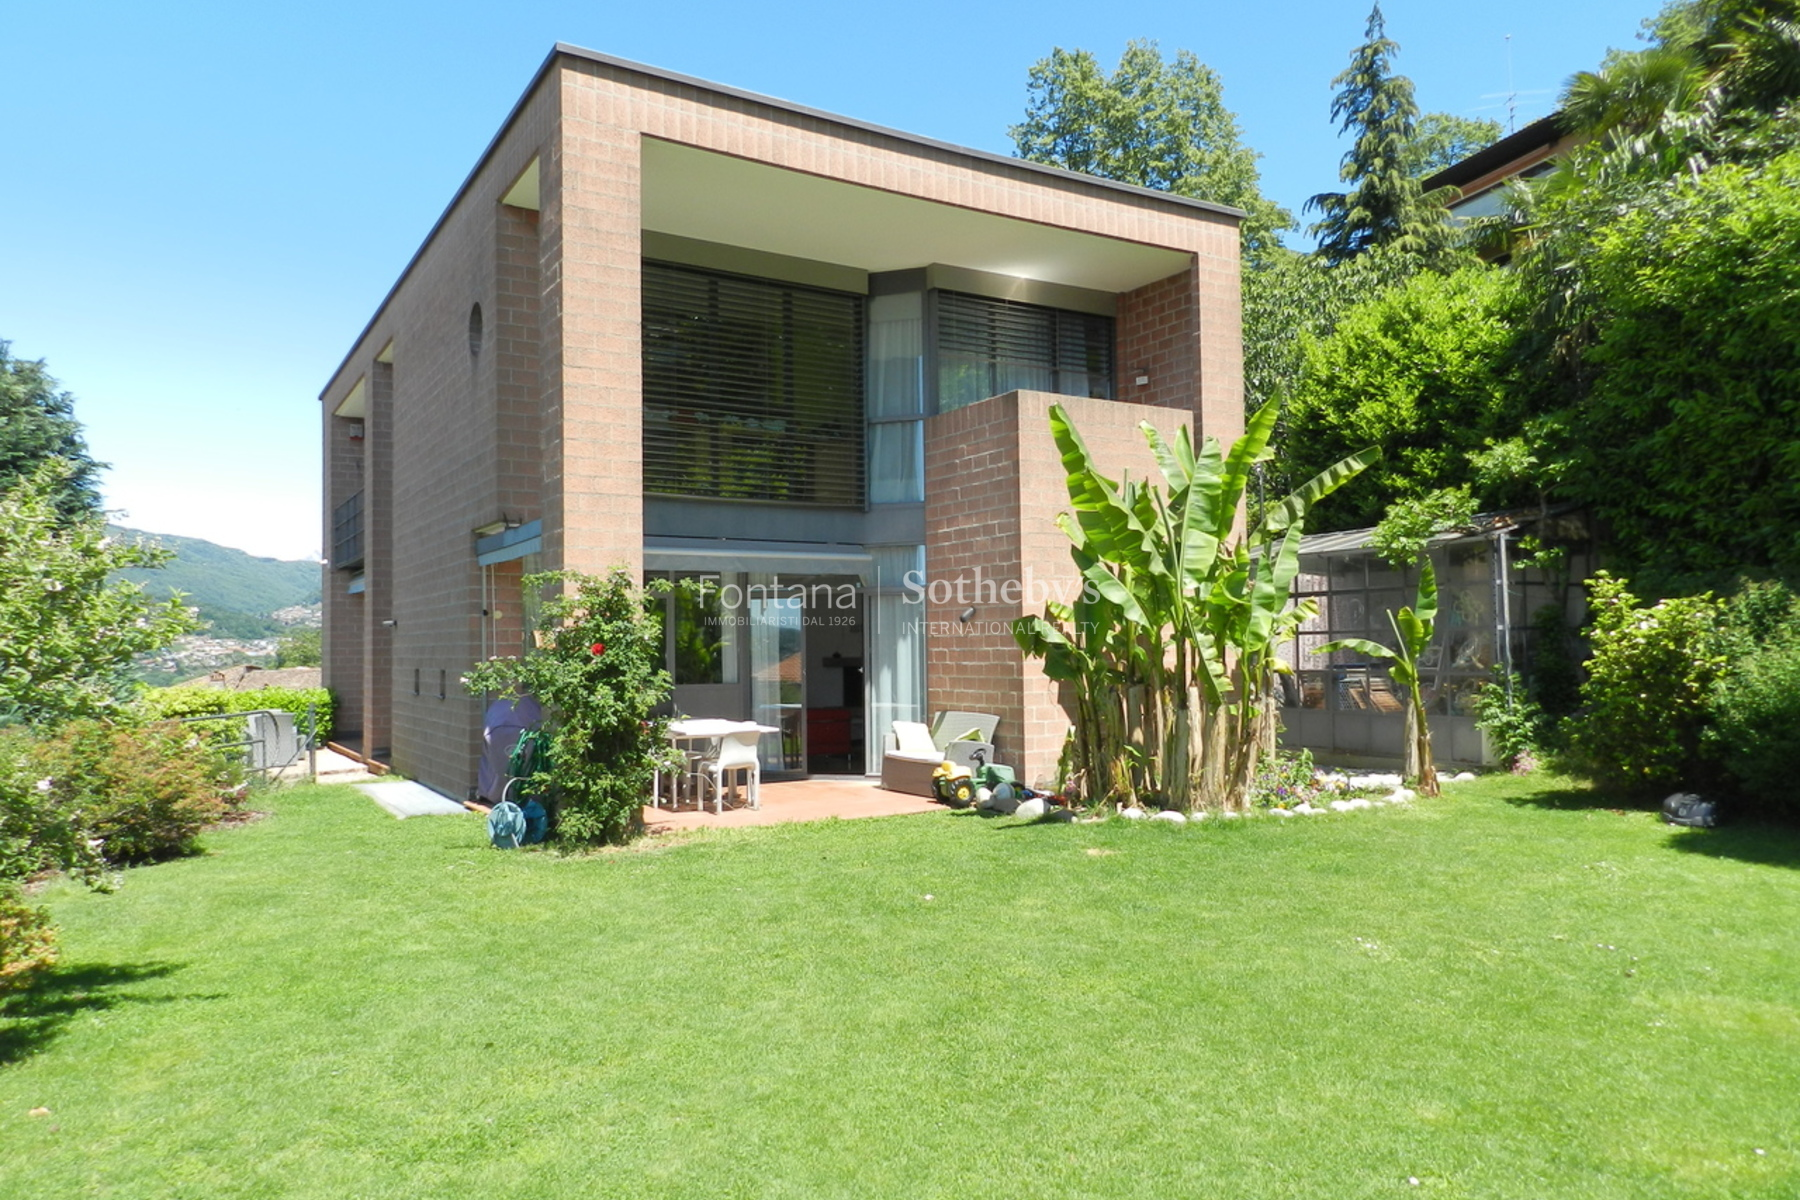 Single Family Home for Sale at Modern house with panoramic view Davesco-Soragno Other Switzerland, Other Areas In Switzerland, 6964 Switzerland